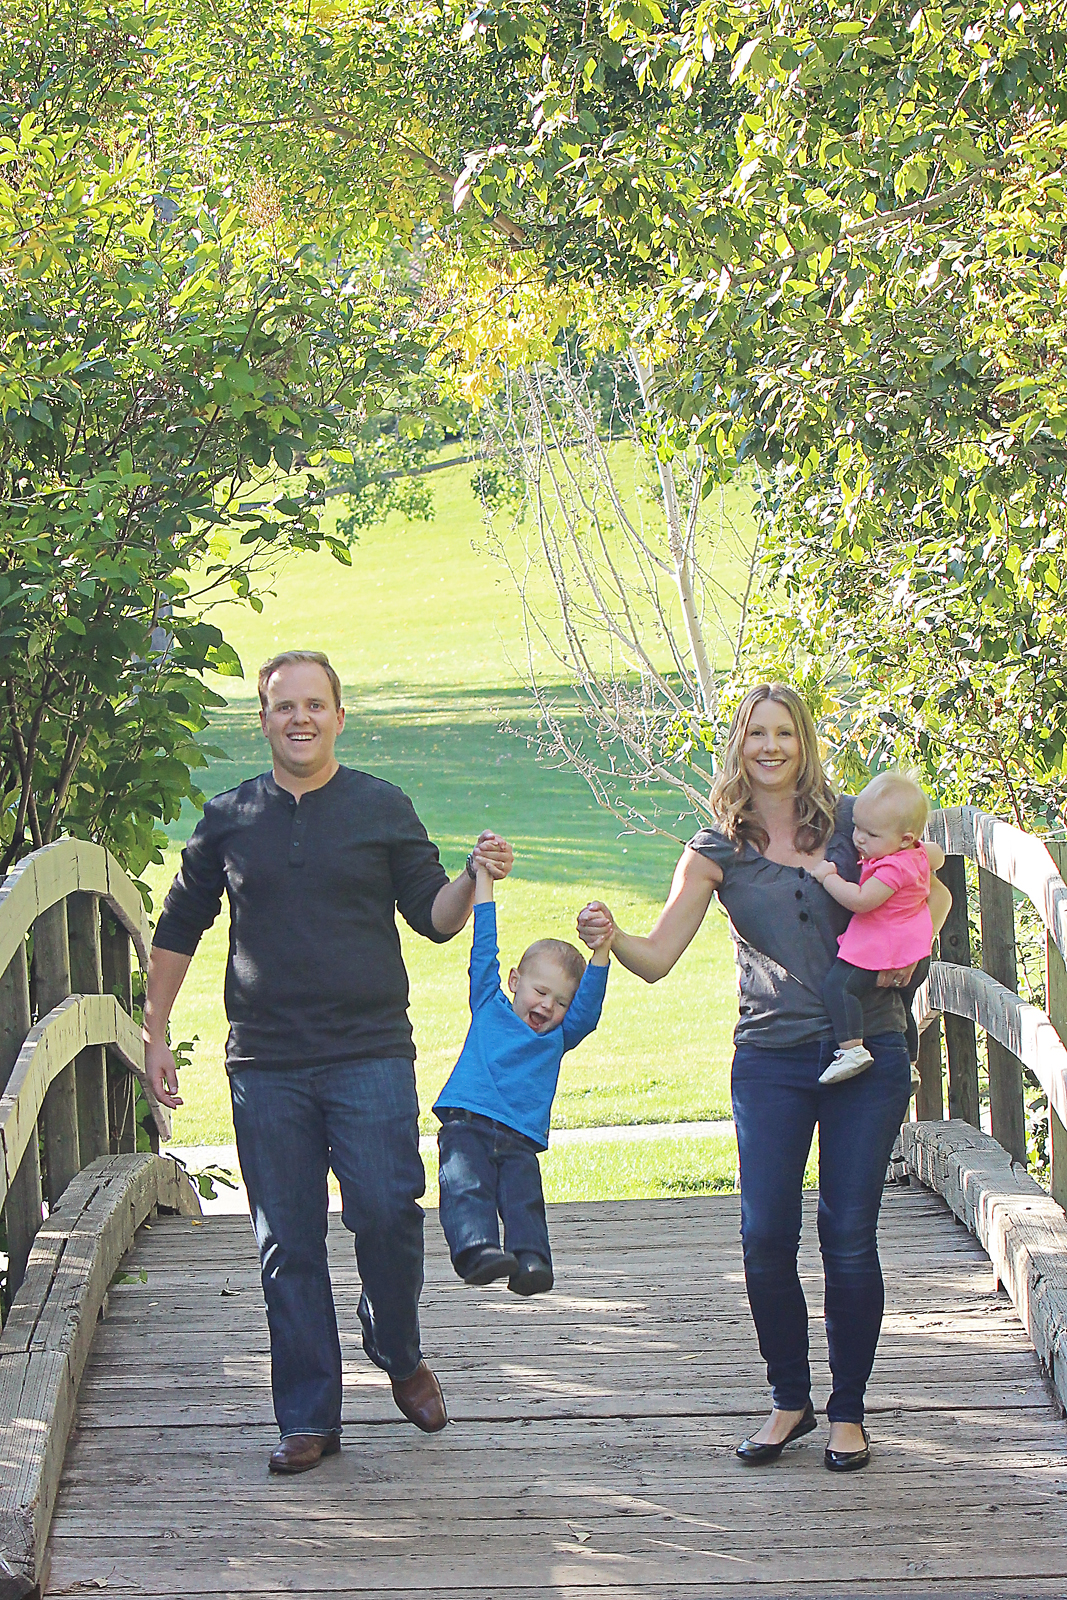 Family photo shoot in Confederation Park in Calgary with family walking over wooden bridge swinging little boy